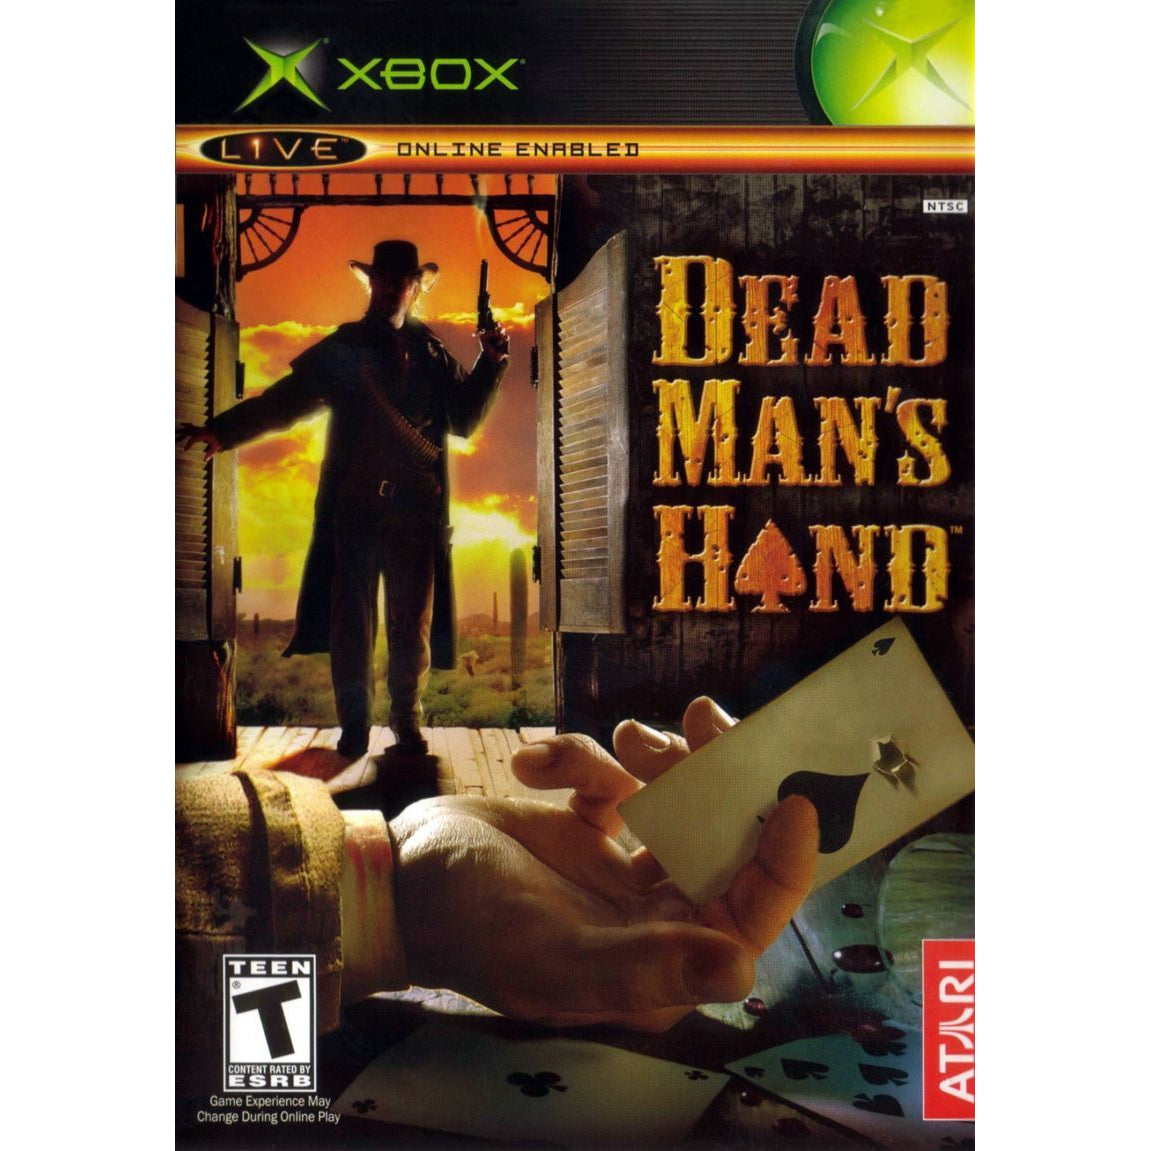 Dead Man's Hand - Microsoft Xbox Game Complete - YourGamingShop.com - Buy, Sell, Trade Video Games Online. 120 Day Warranty. Satisfaction Guaranteed.